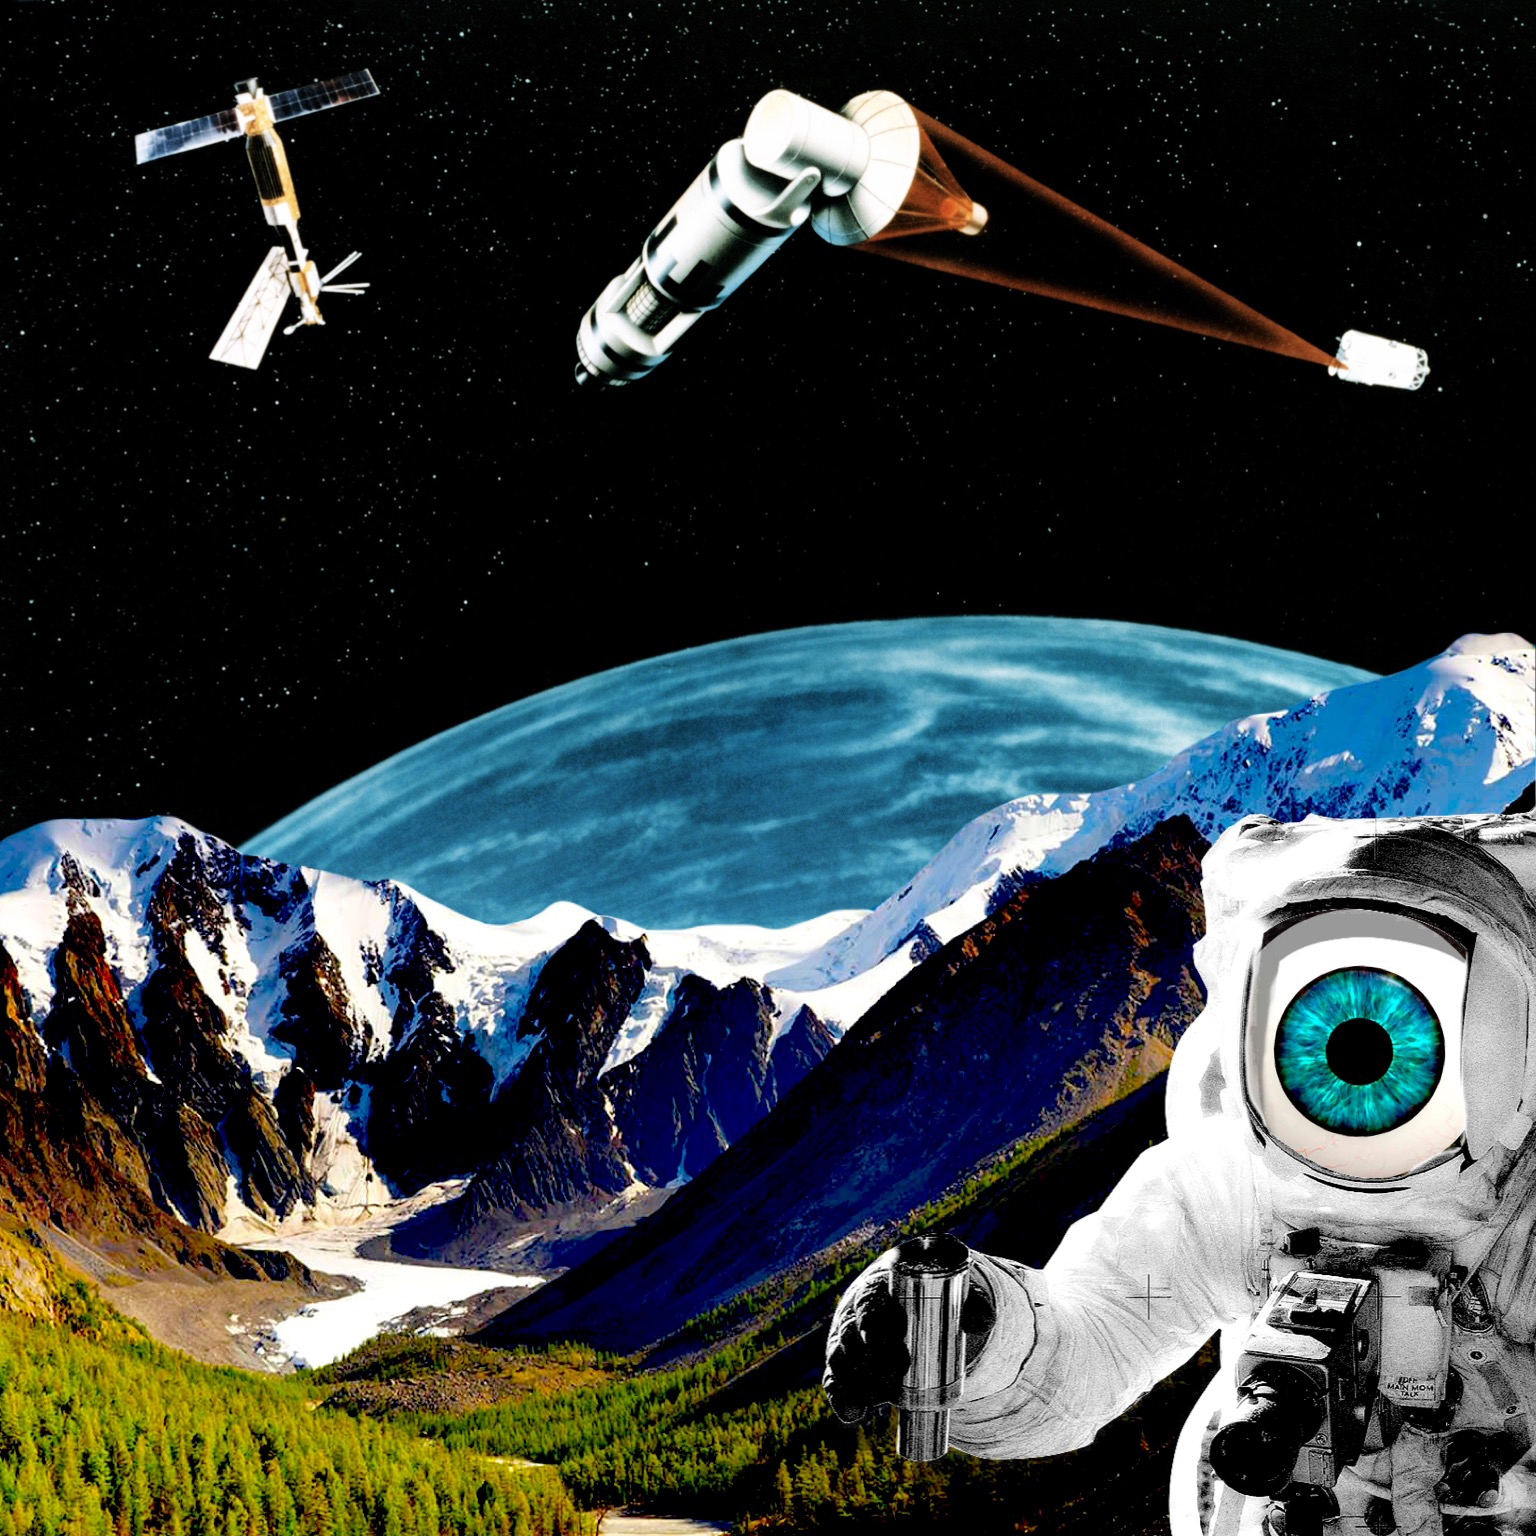 Space Junk by Carrie Becker